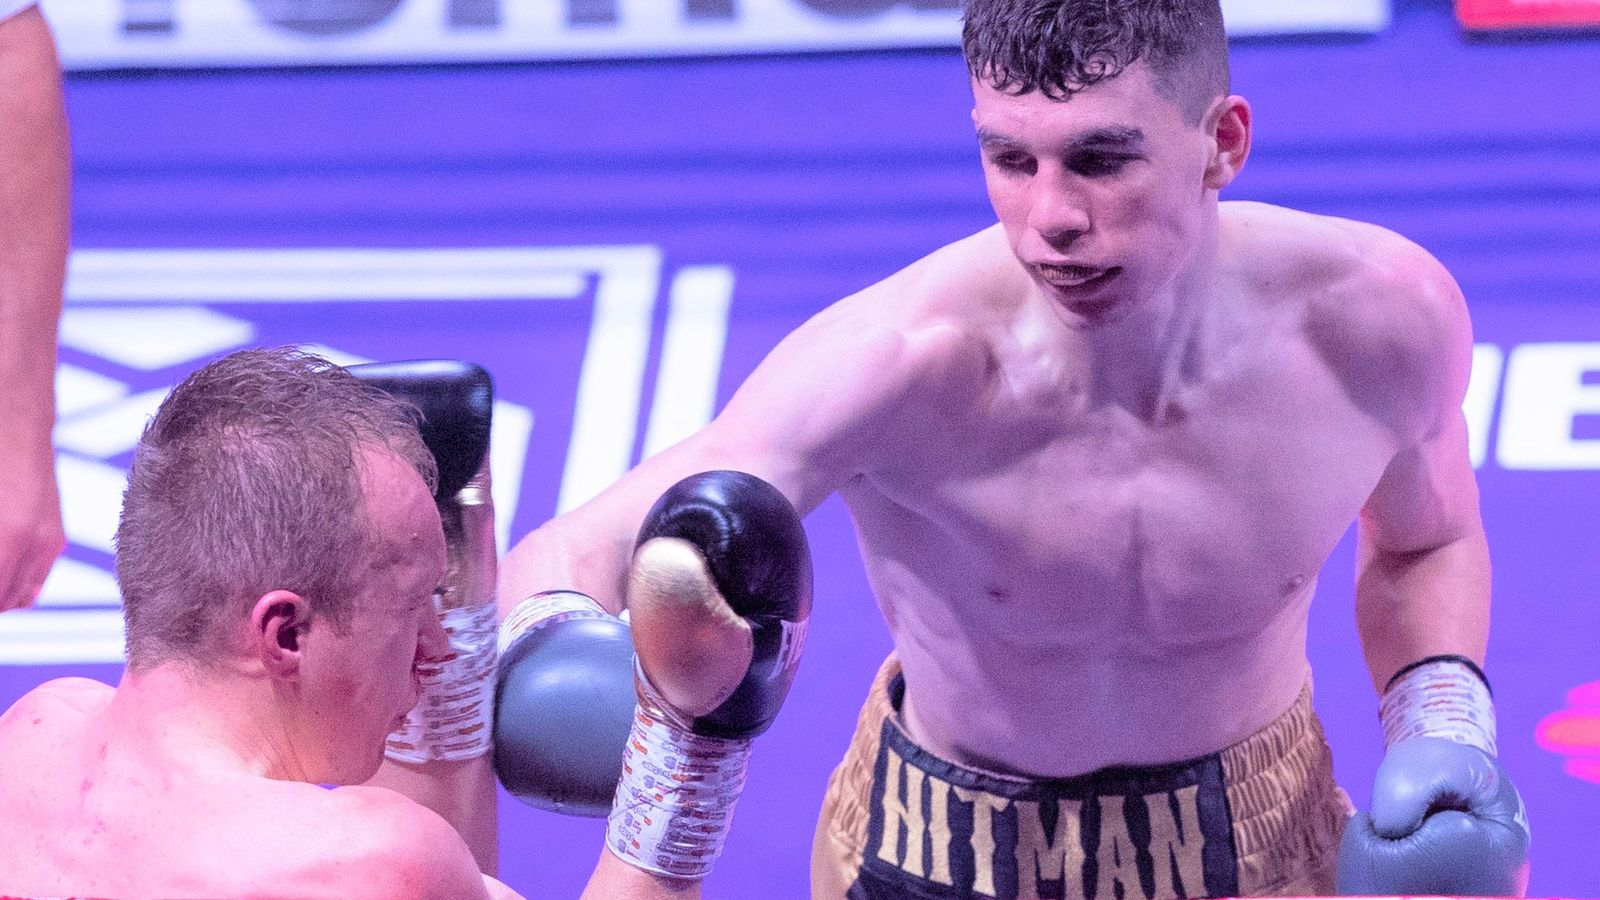 Stevie McKenna studies the brutal body shots of Gennadiy Golovkin and says he's an opponent's worst nightmare